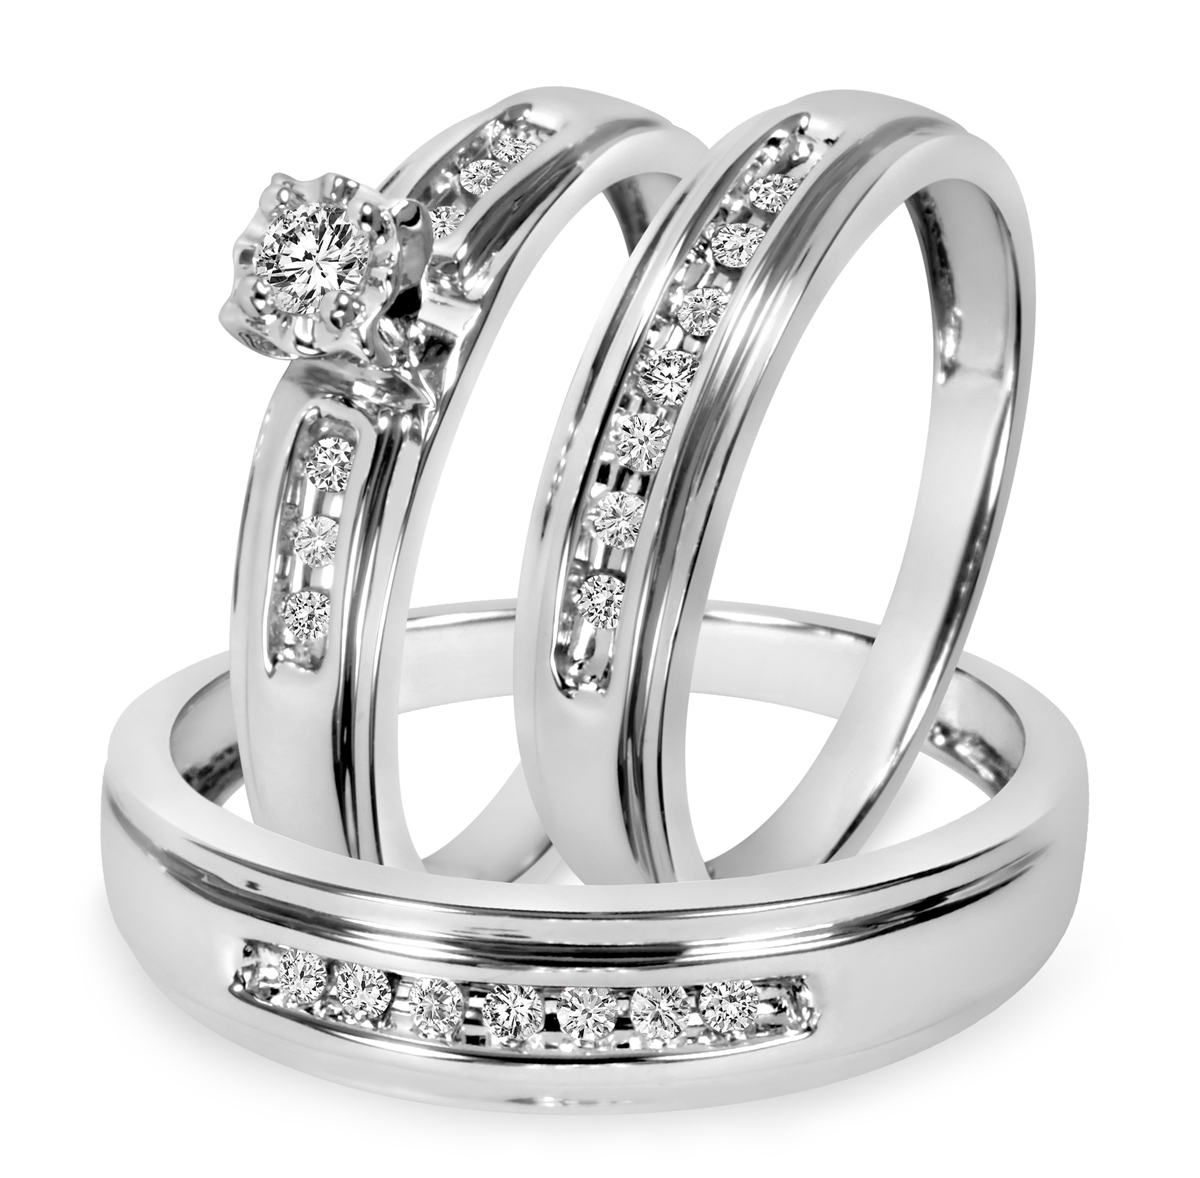 1/4 CT. T.W. Diamond Trio Matching Wedding Ring Set 14K White Gold